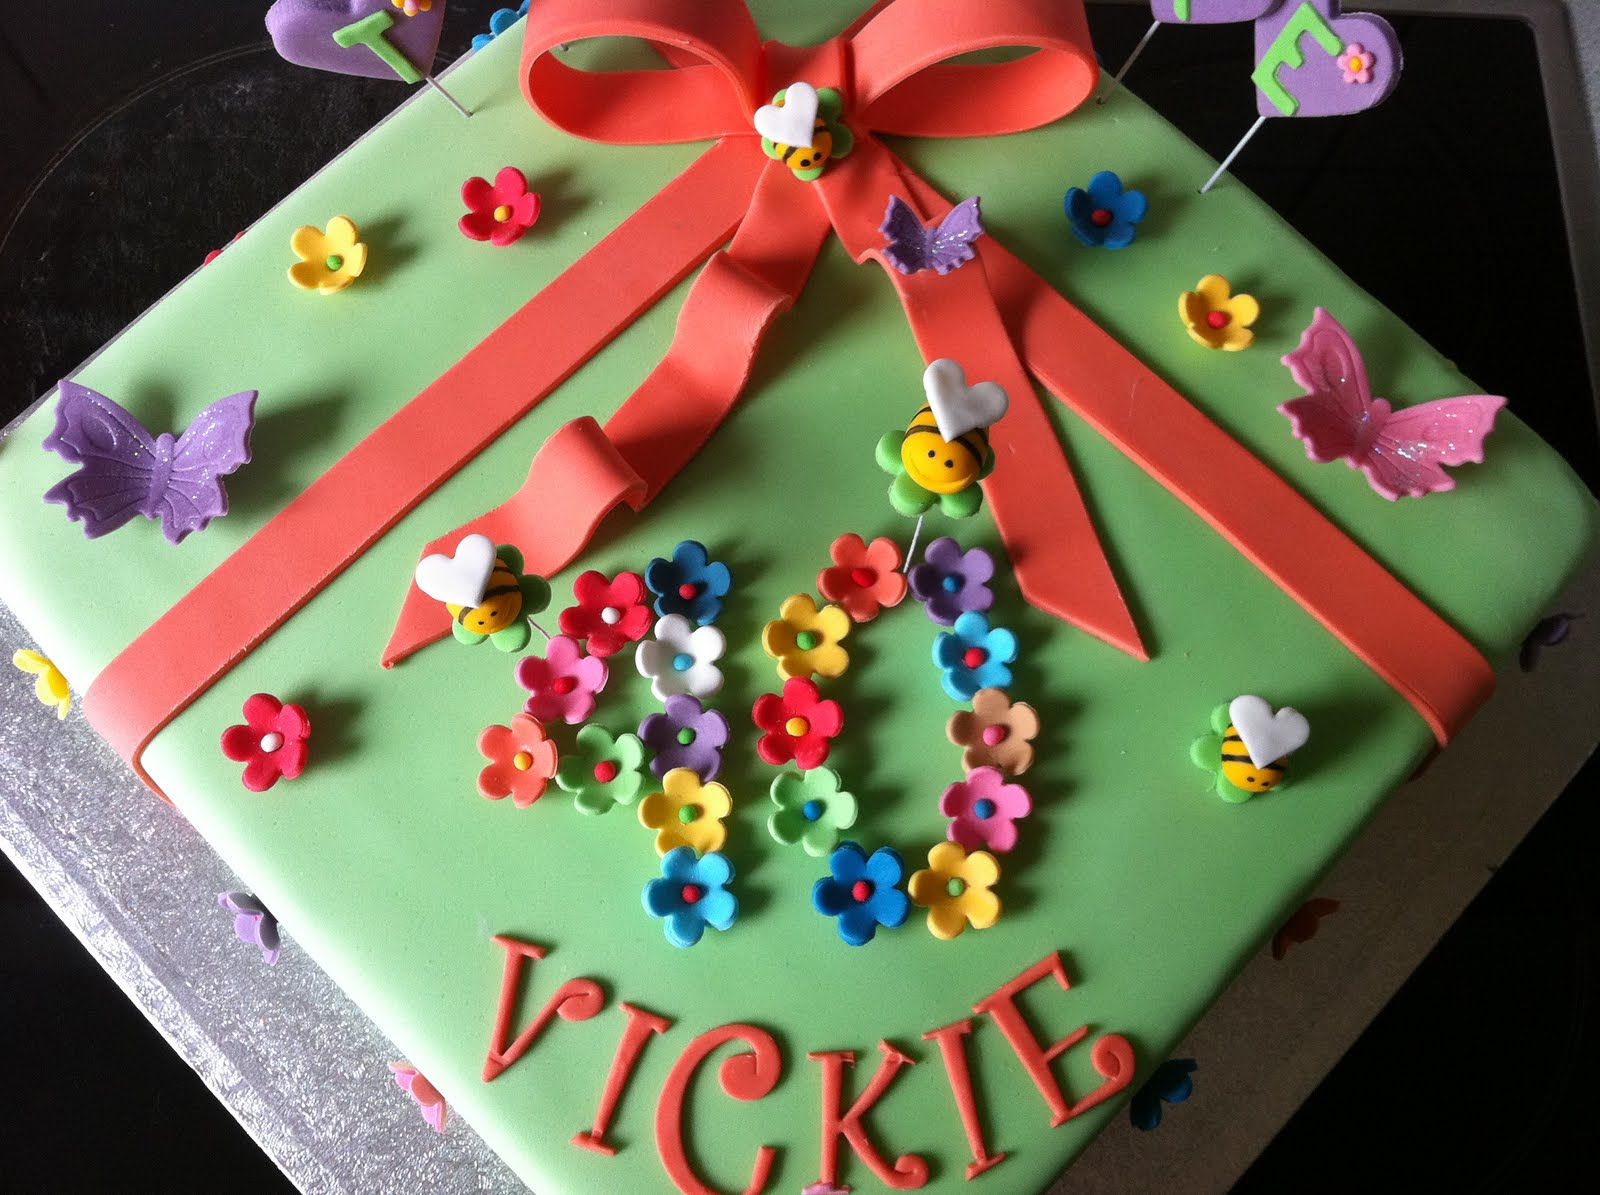 Birthday Cake Images With Name Vicky : HOLLYS CAKES: Happy Birthday Vickie